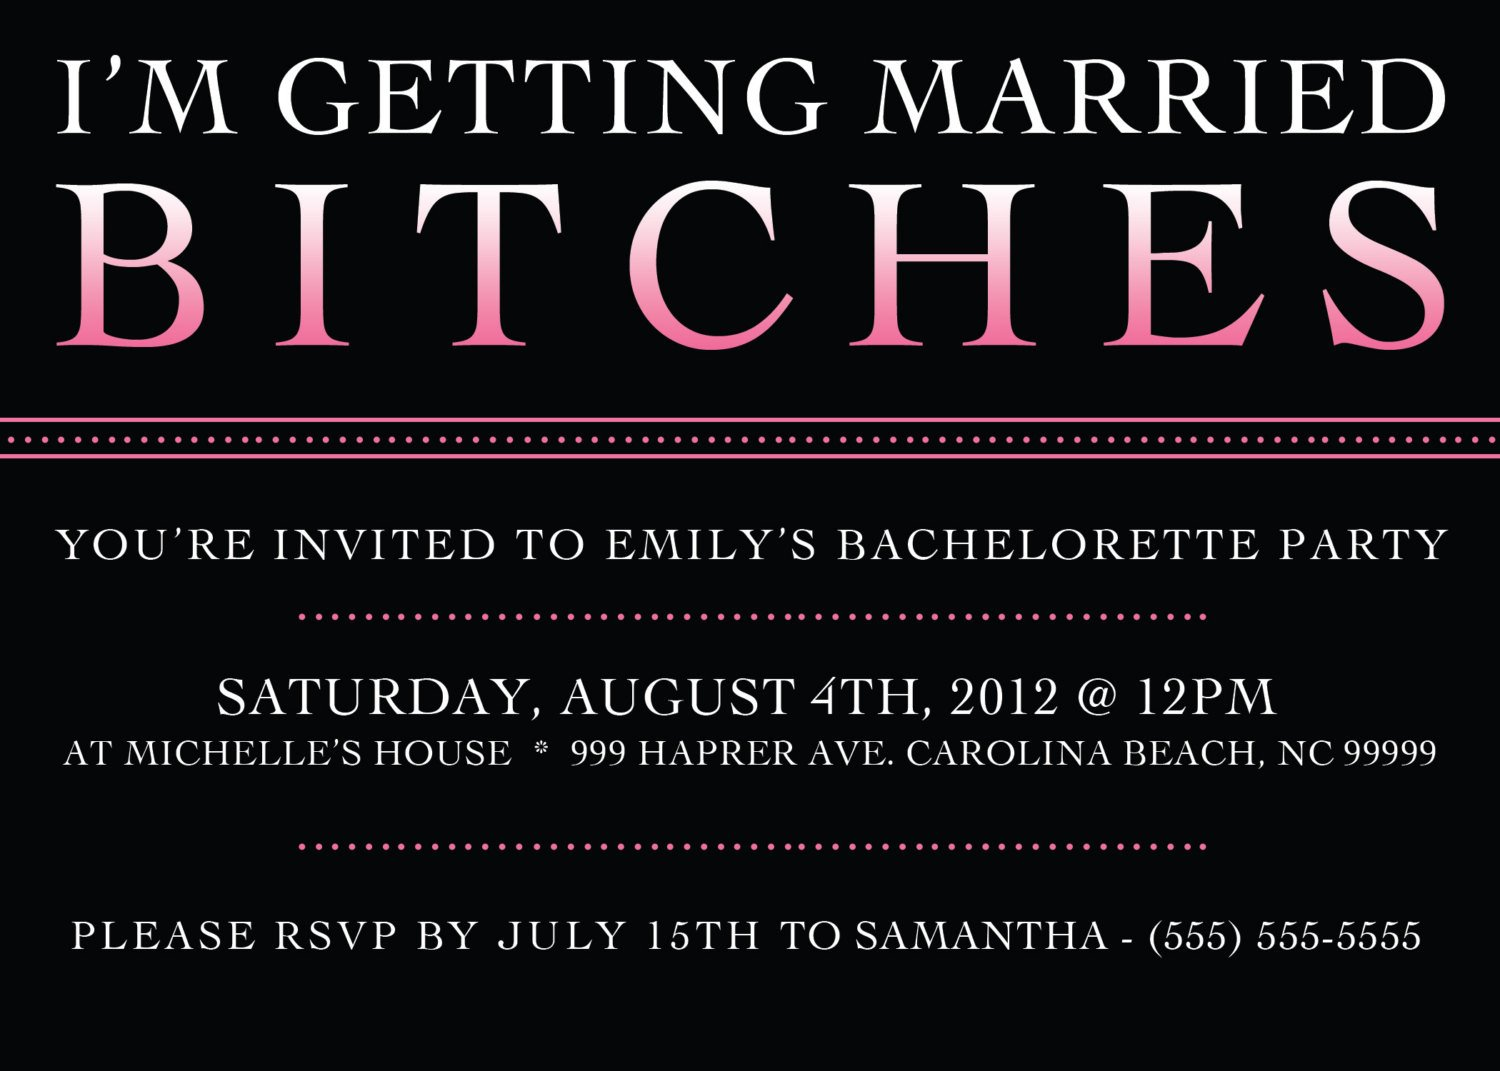 Bachelorette Party Invitations Template Free Printable Bachelorette Party Invitation 5 X 7 Bachelorette